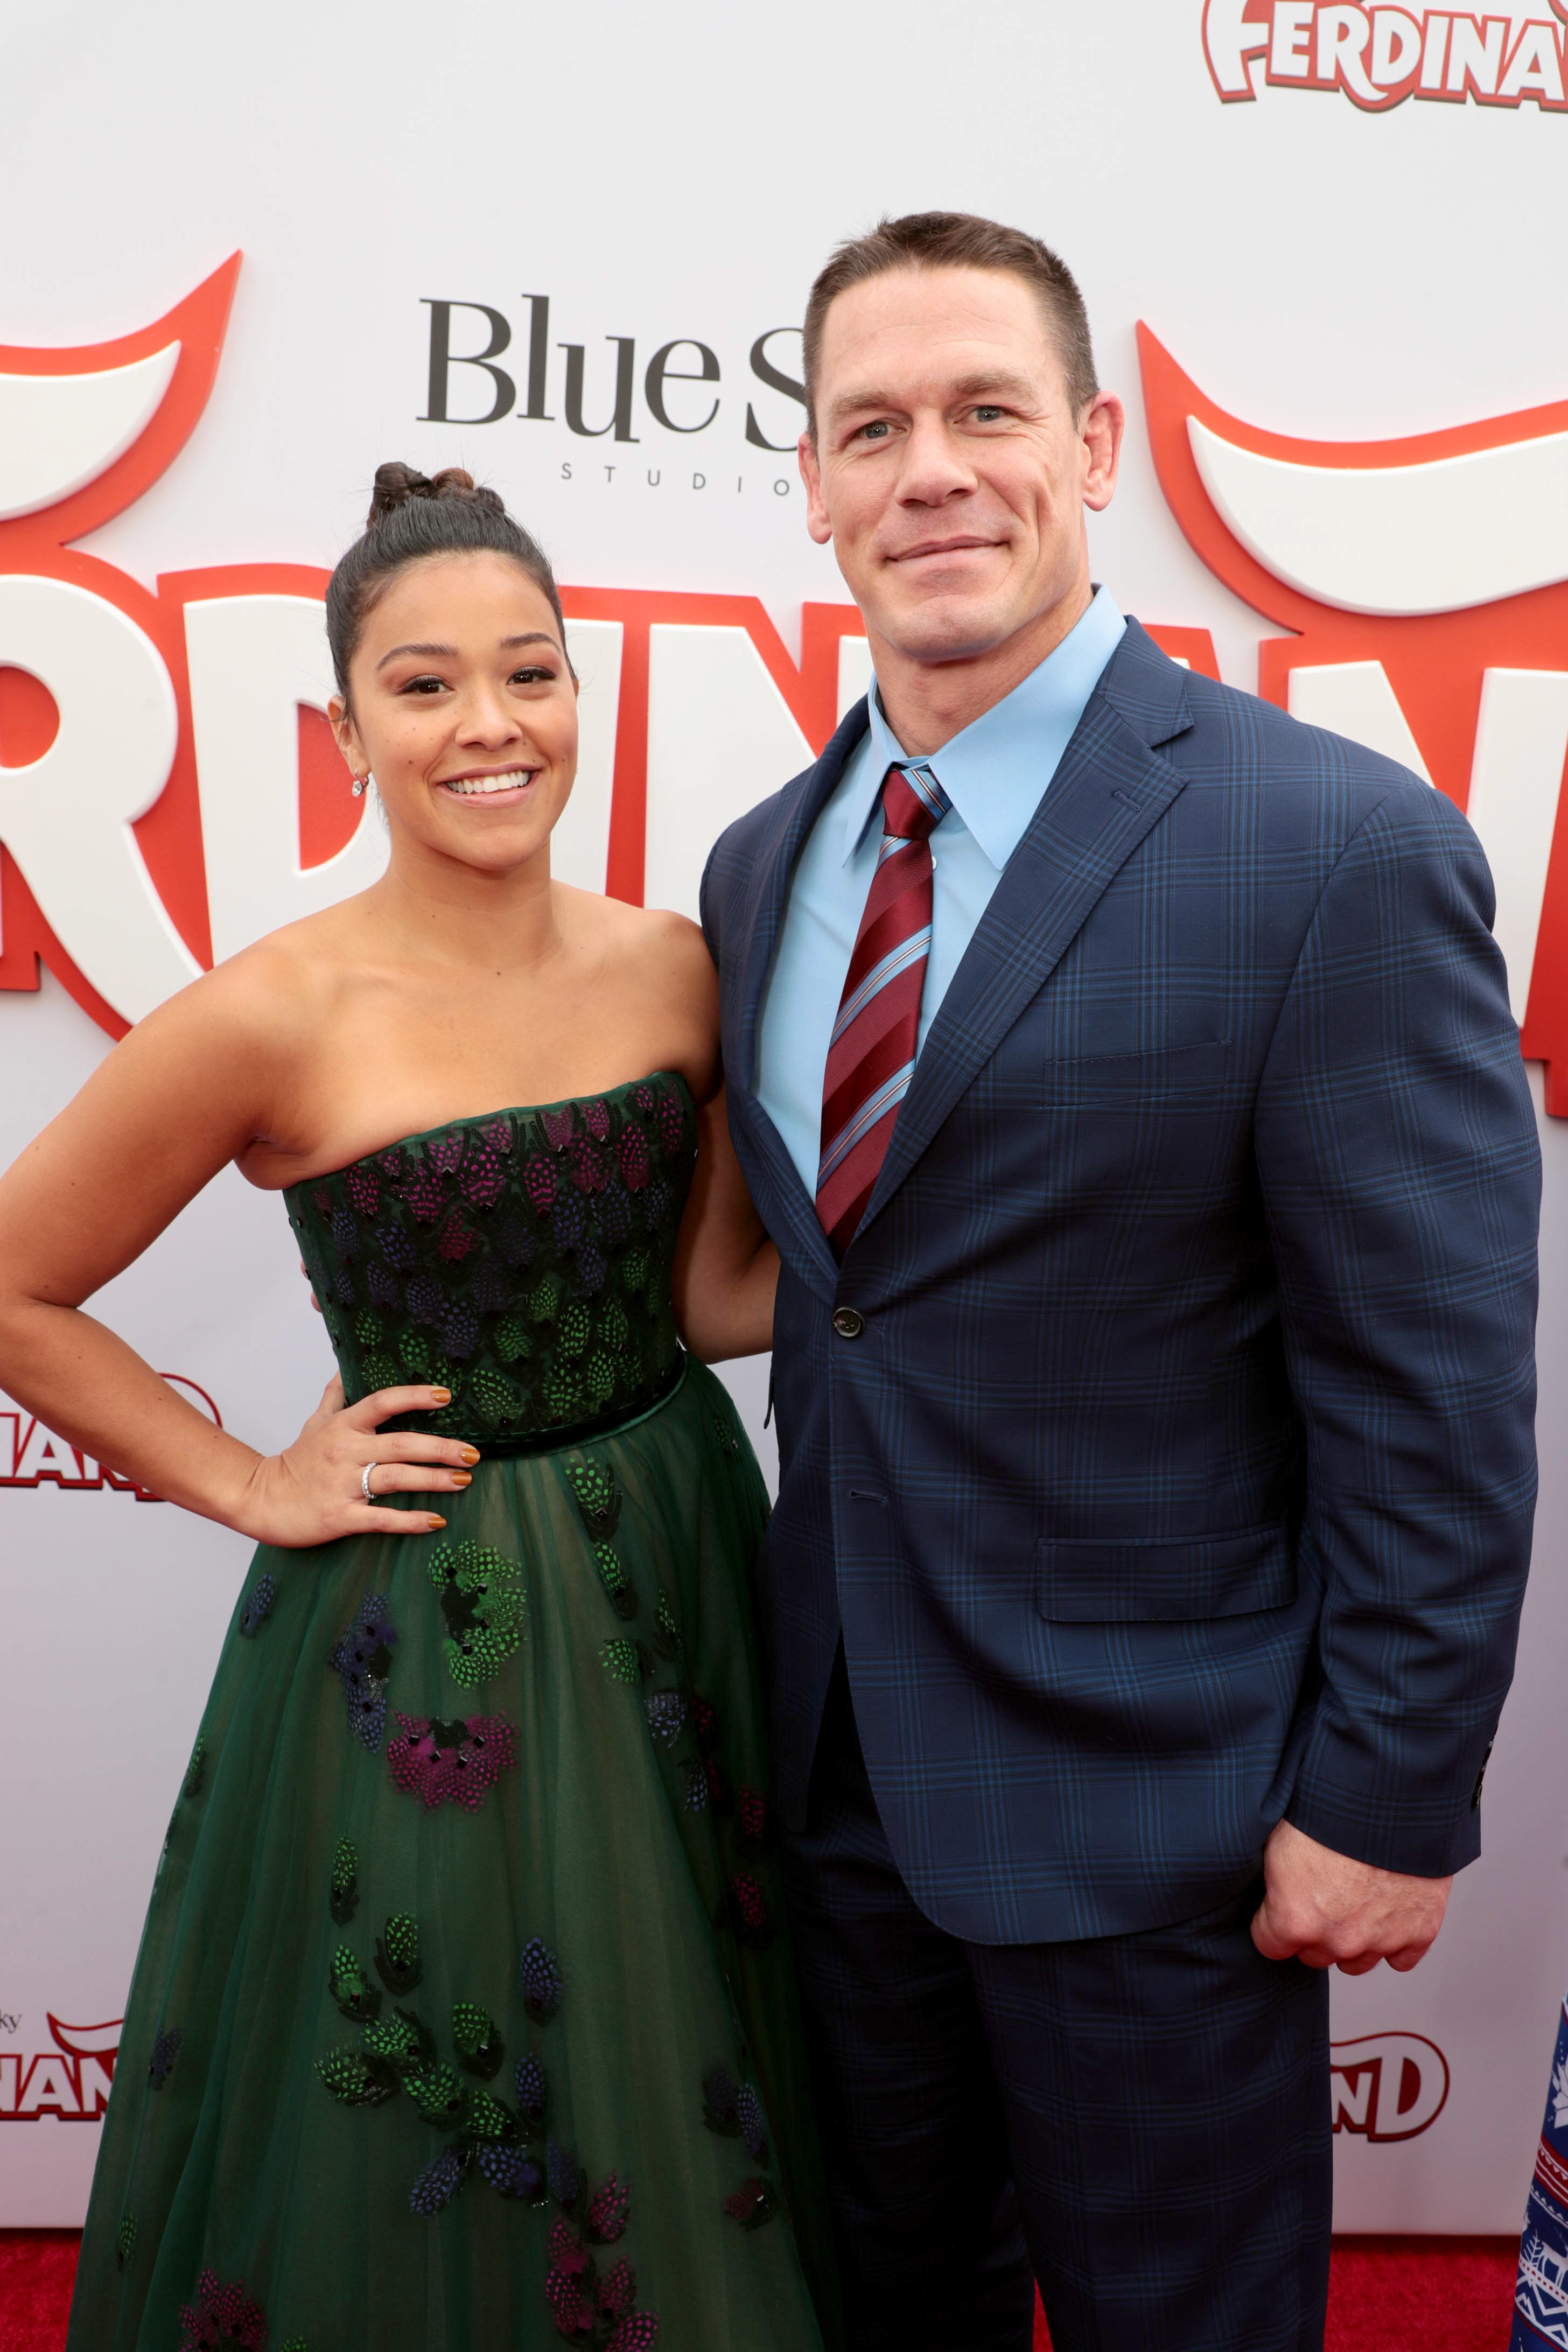 Gina Rodriguez and John Cena attend the Twentieth Century Fox and Blue Sky Studios FERDINAND at the Zanuck Theater in Los Angeles on Dec. 10, 2017.